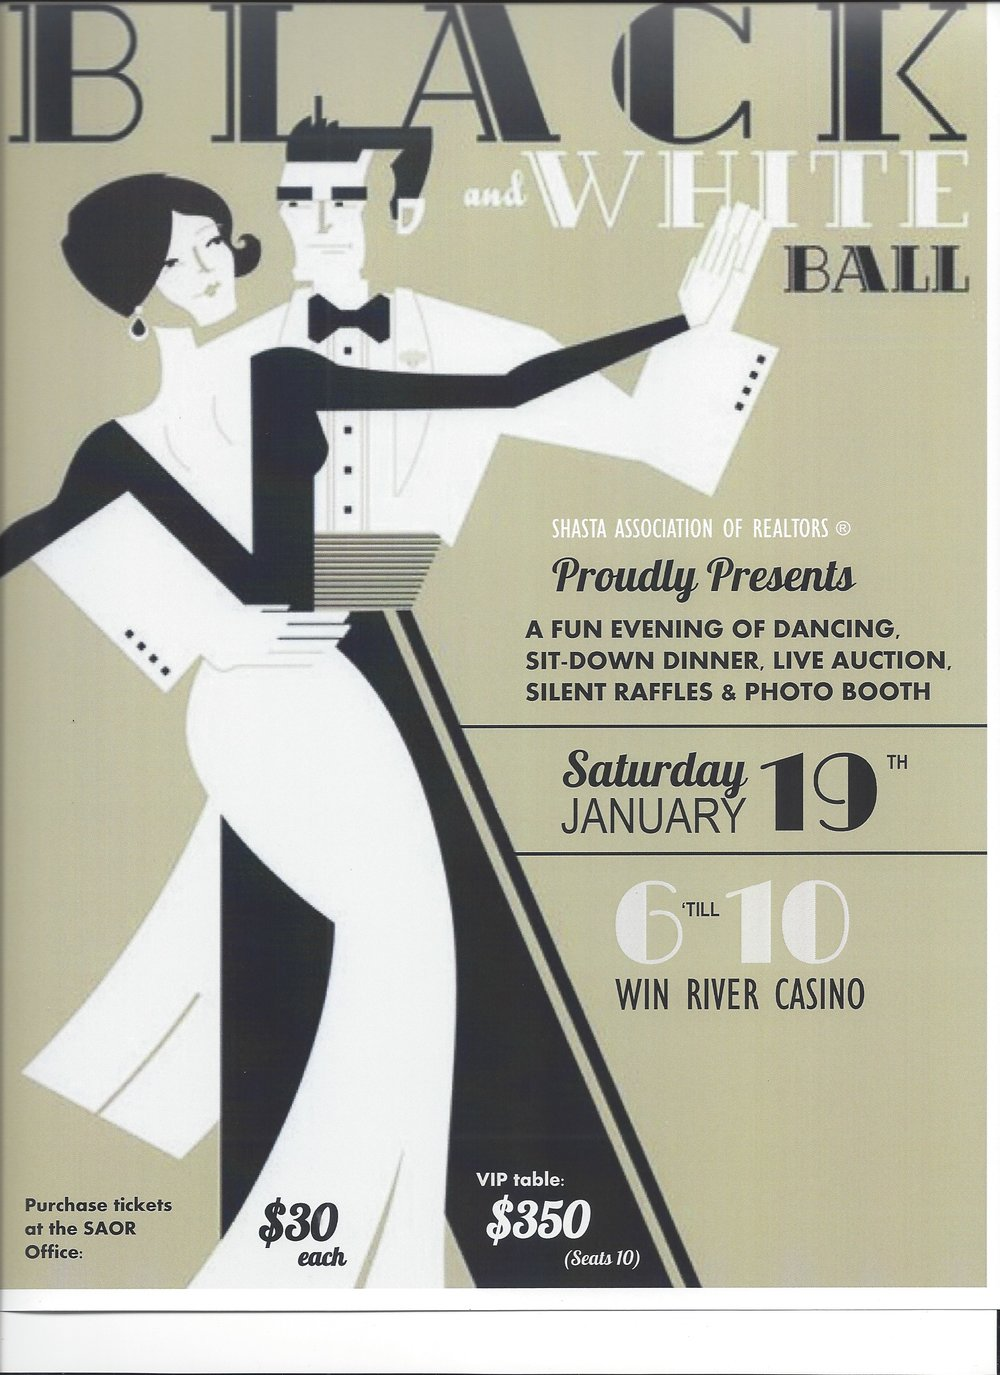 18-12-06;Black & White Ball 2019 Flyer.jpg